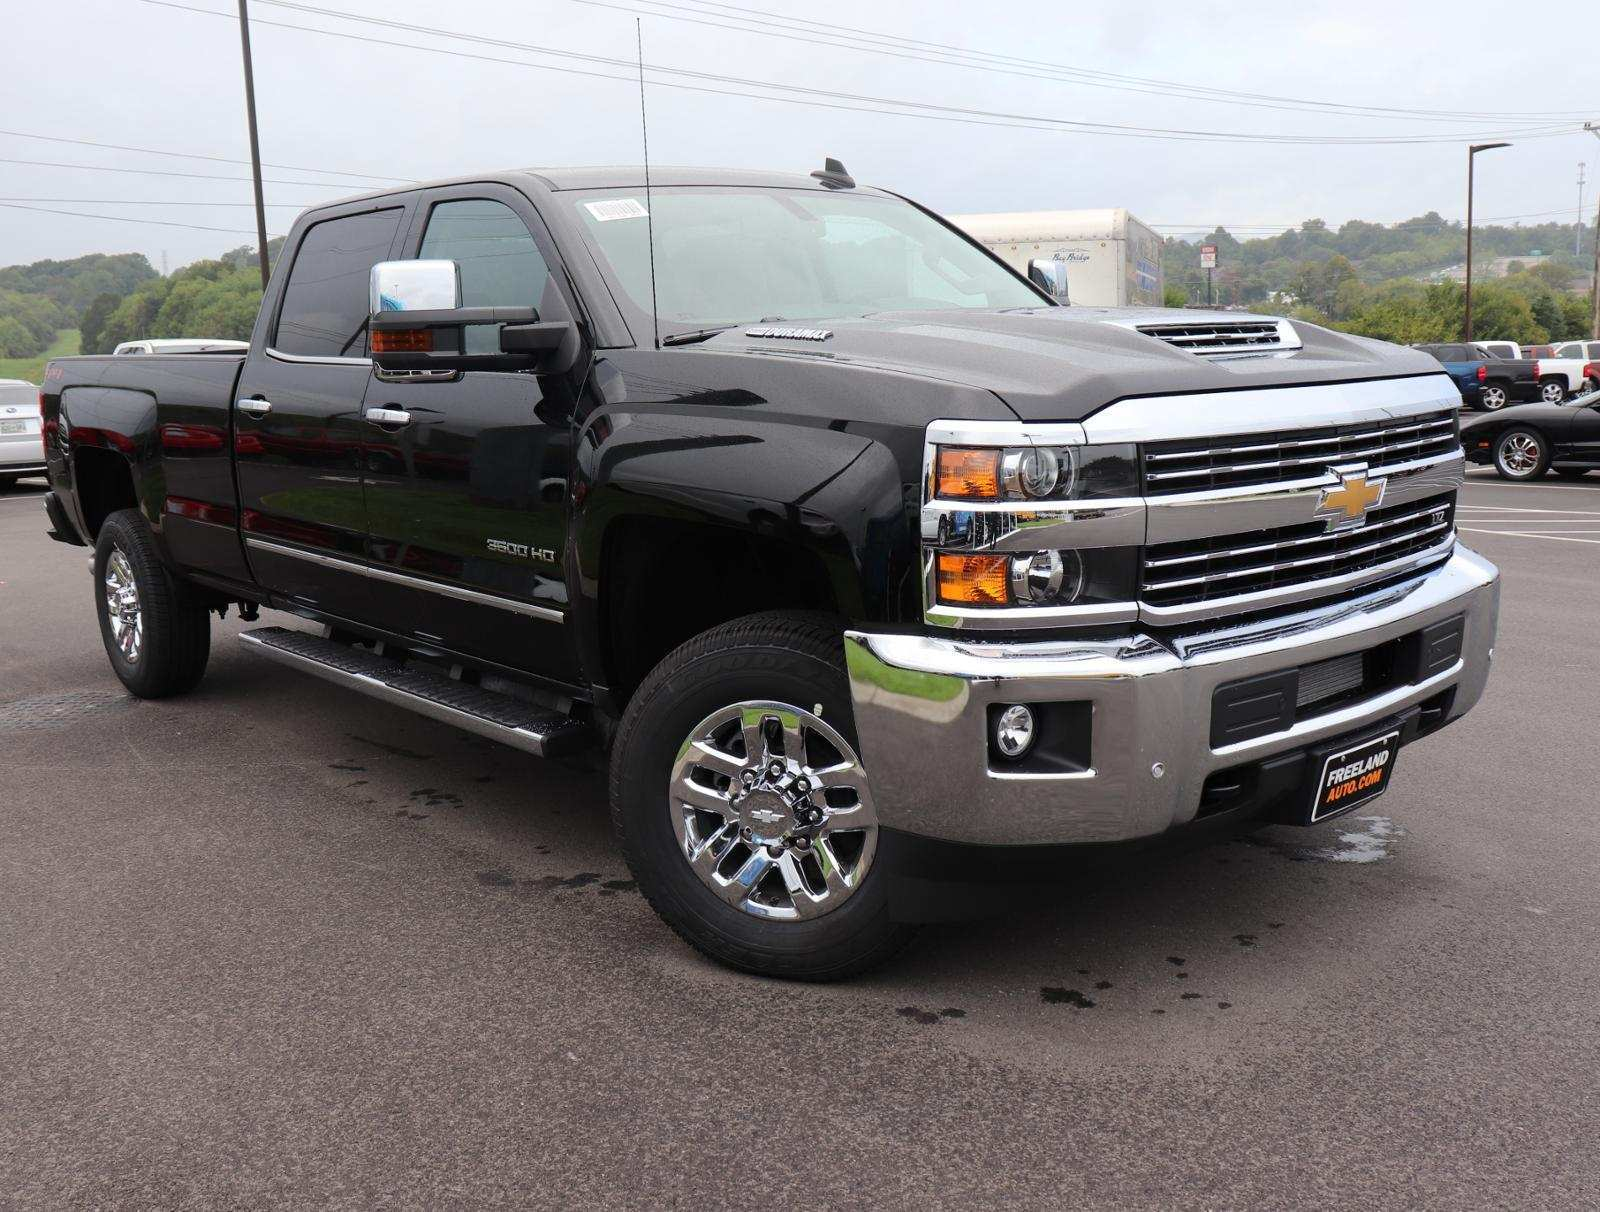 28 New 2019 Chevrolet Silverado 3500 New Review for 2019 Chevrolet Silverado 3500